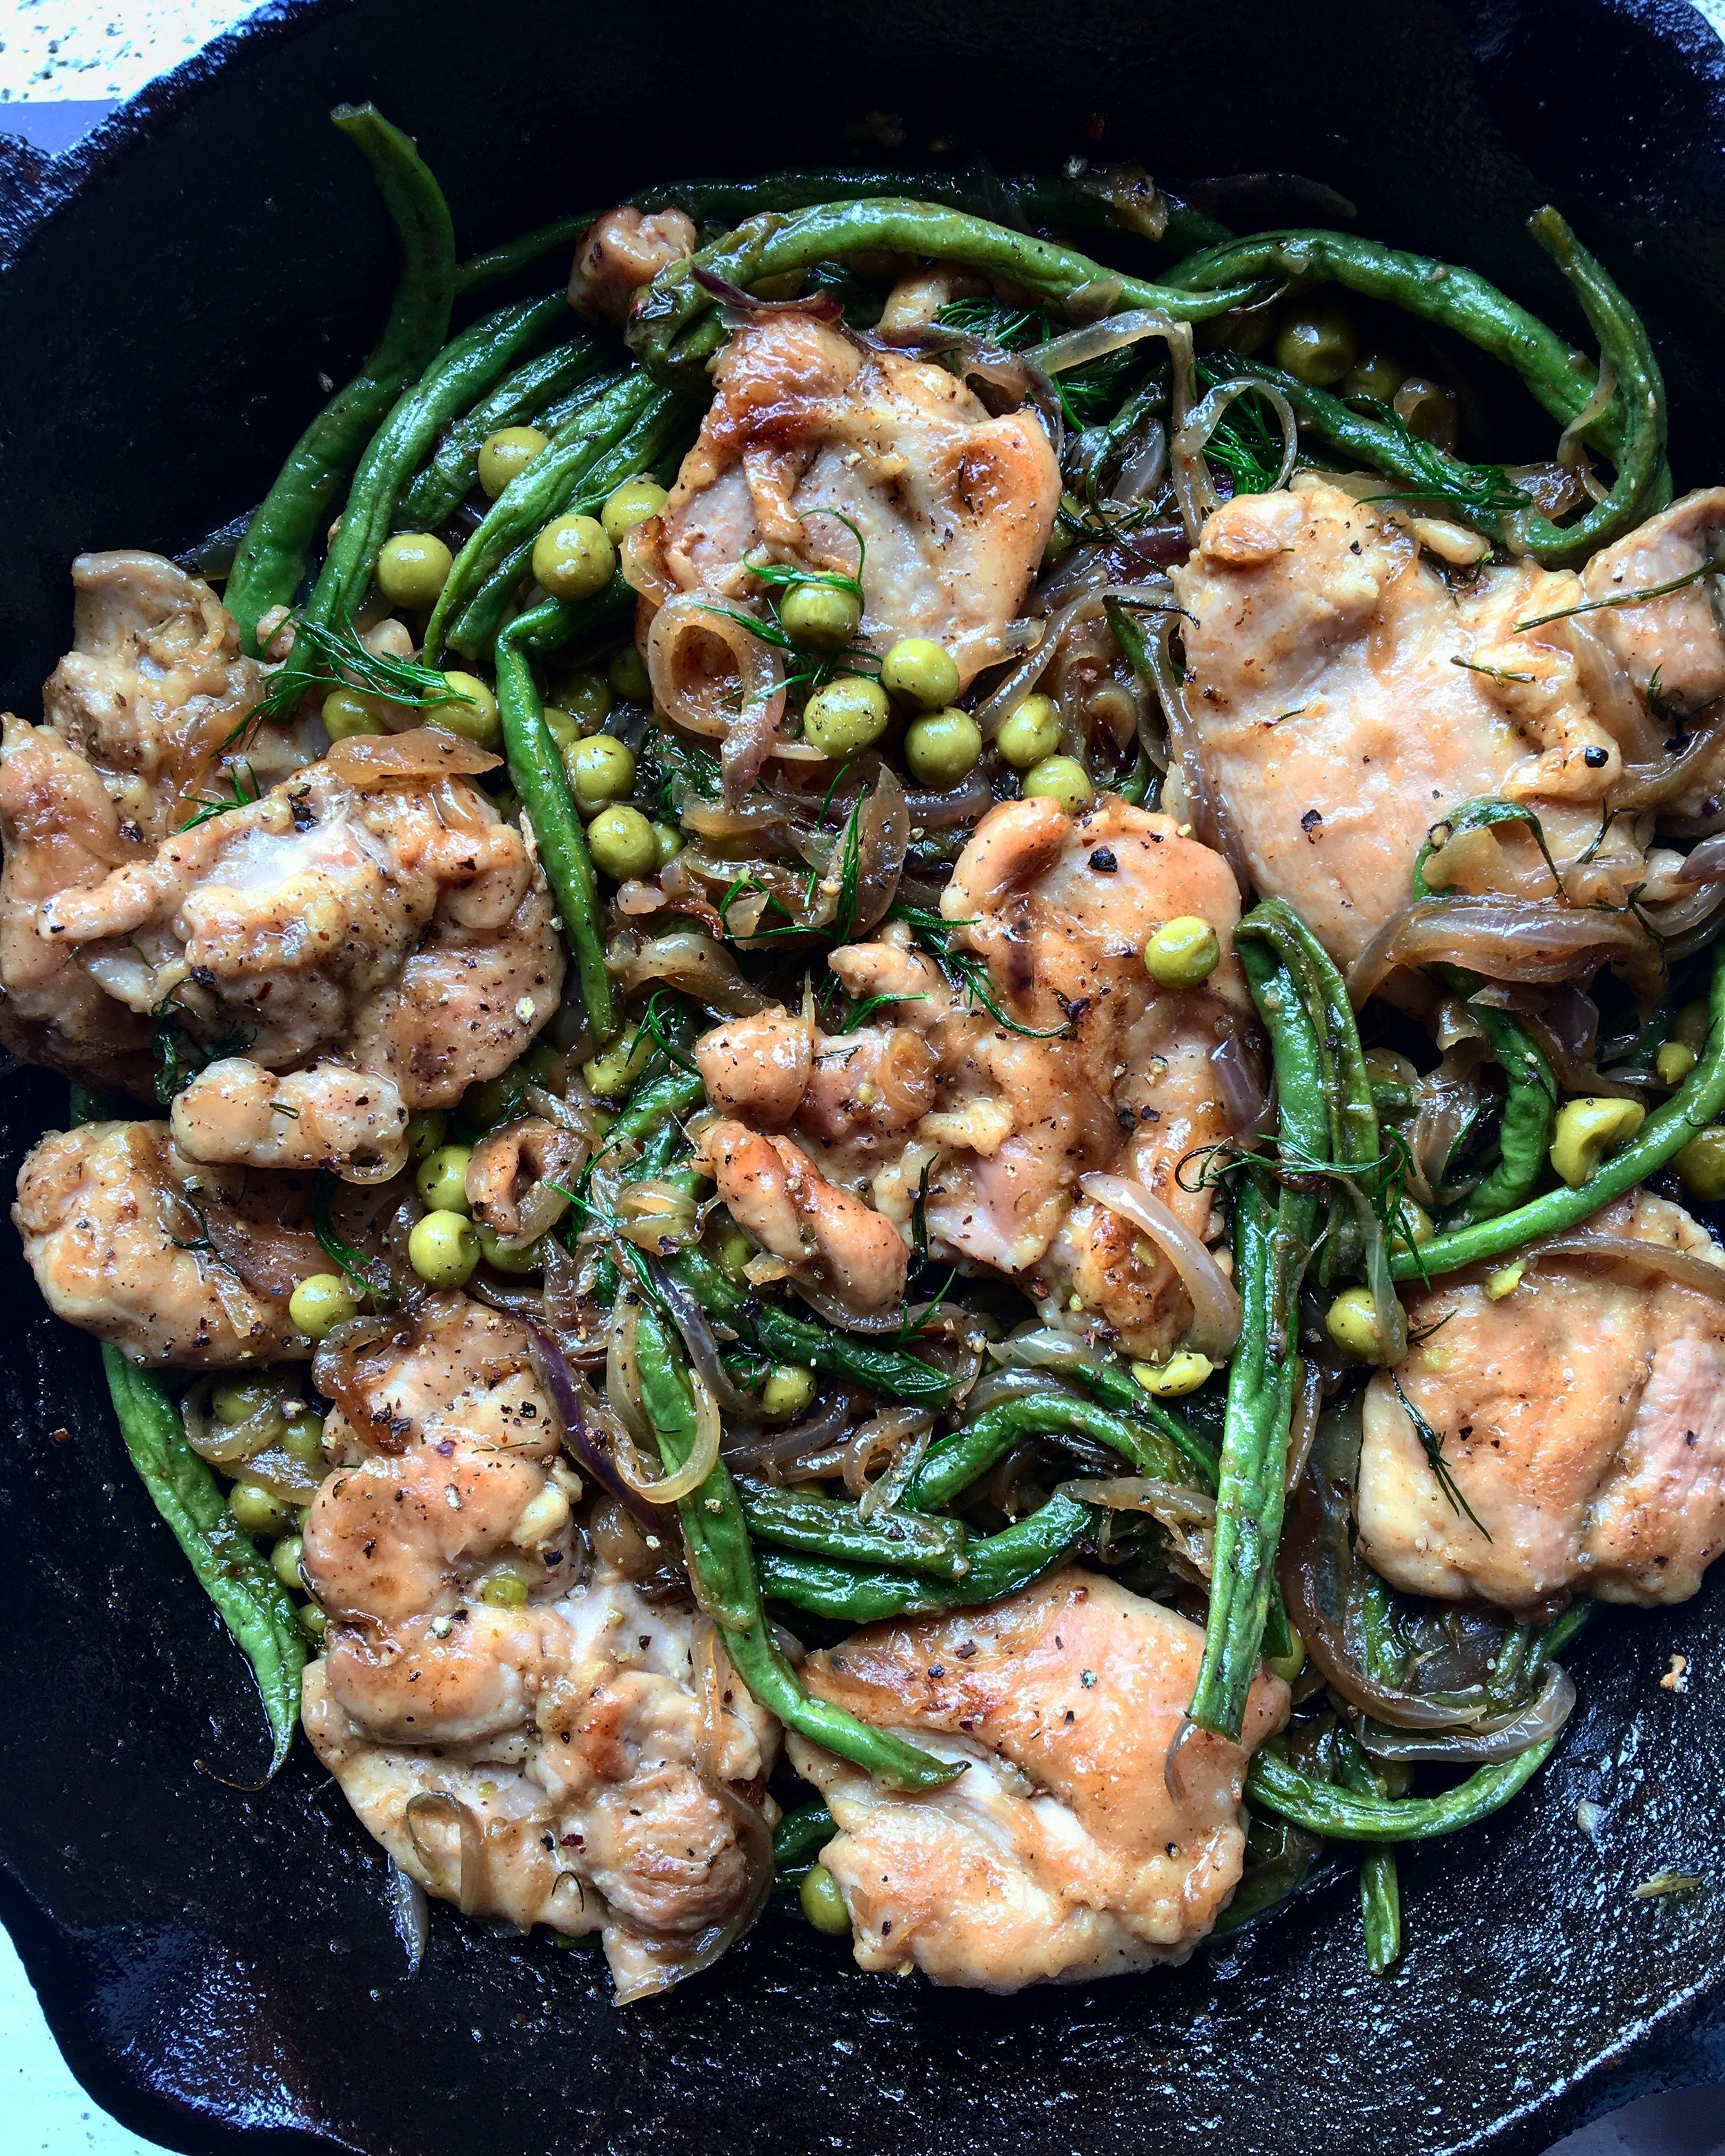 chicken thighs with onions, string beans + peas in a sherry wine, butter + dill sauce